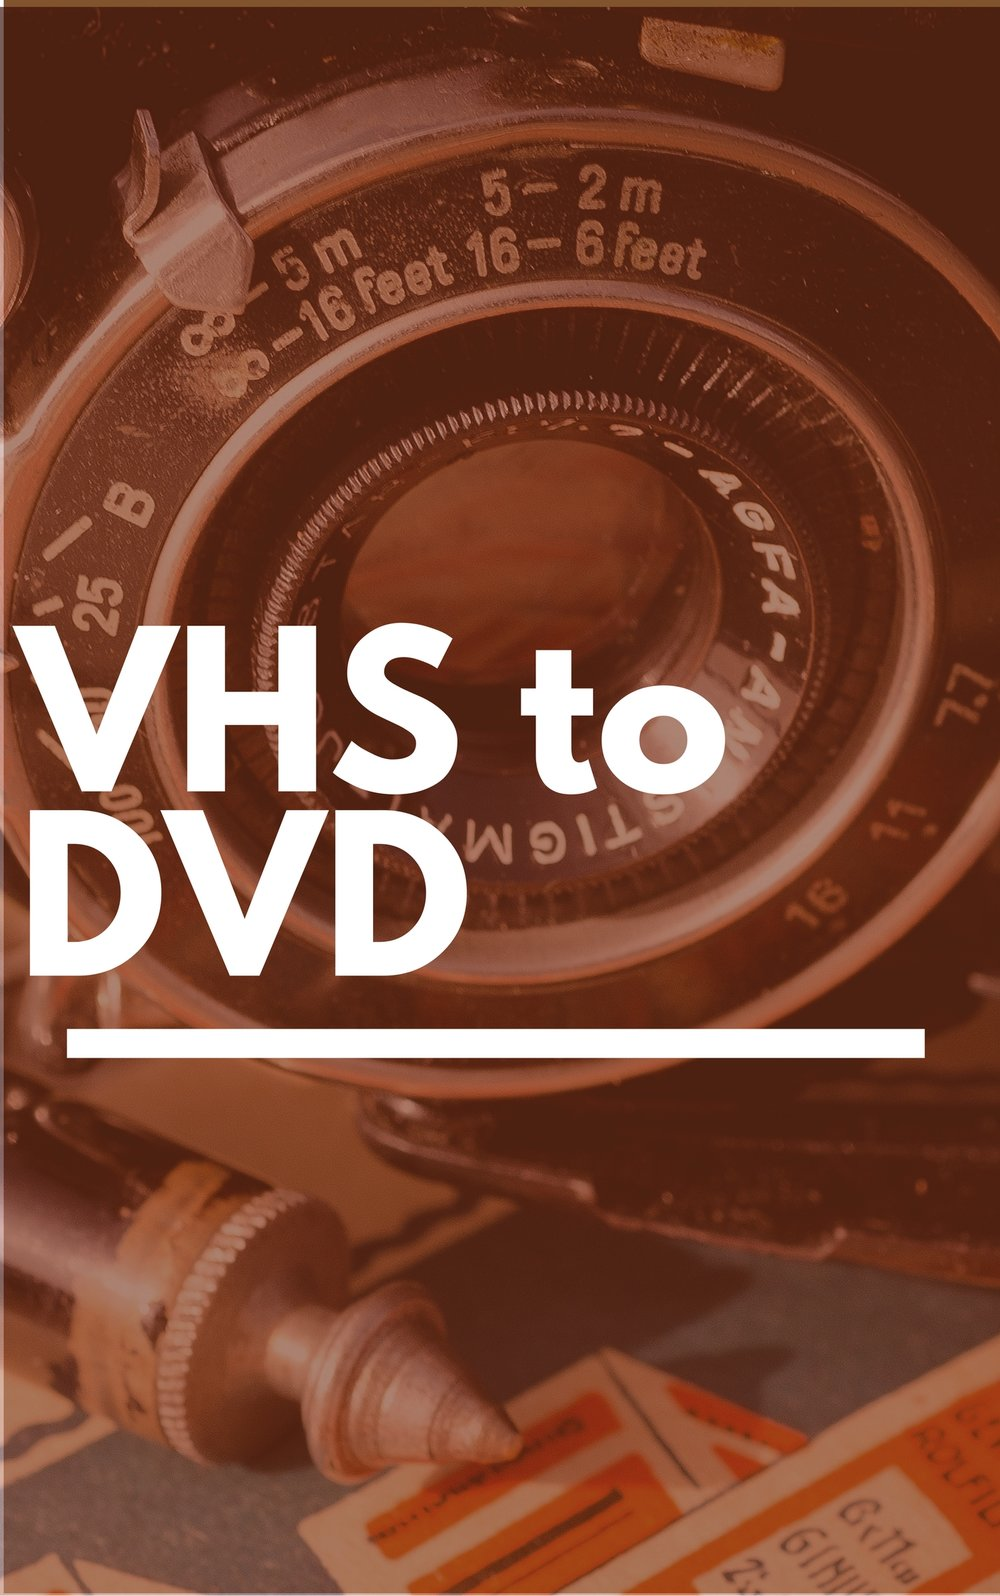 VHS to DVD conversion - Glen Rock Public Library - NJ